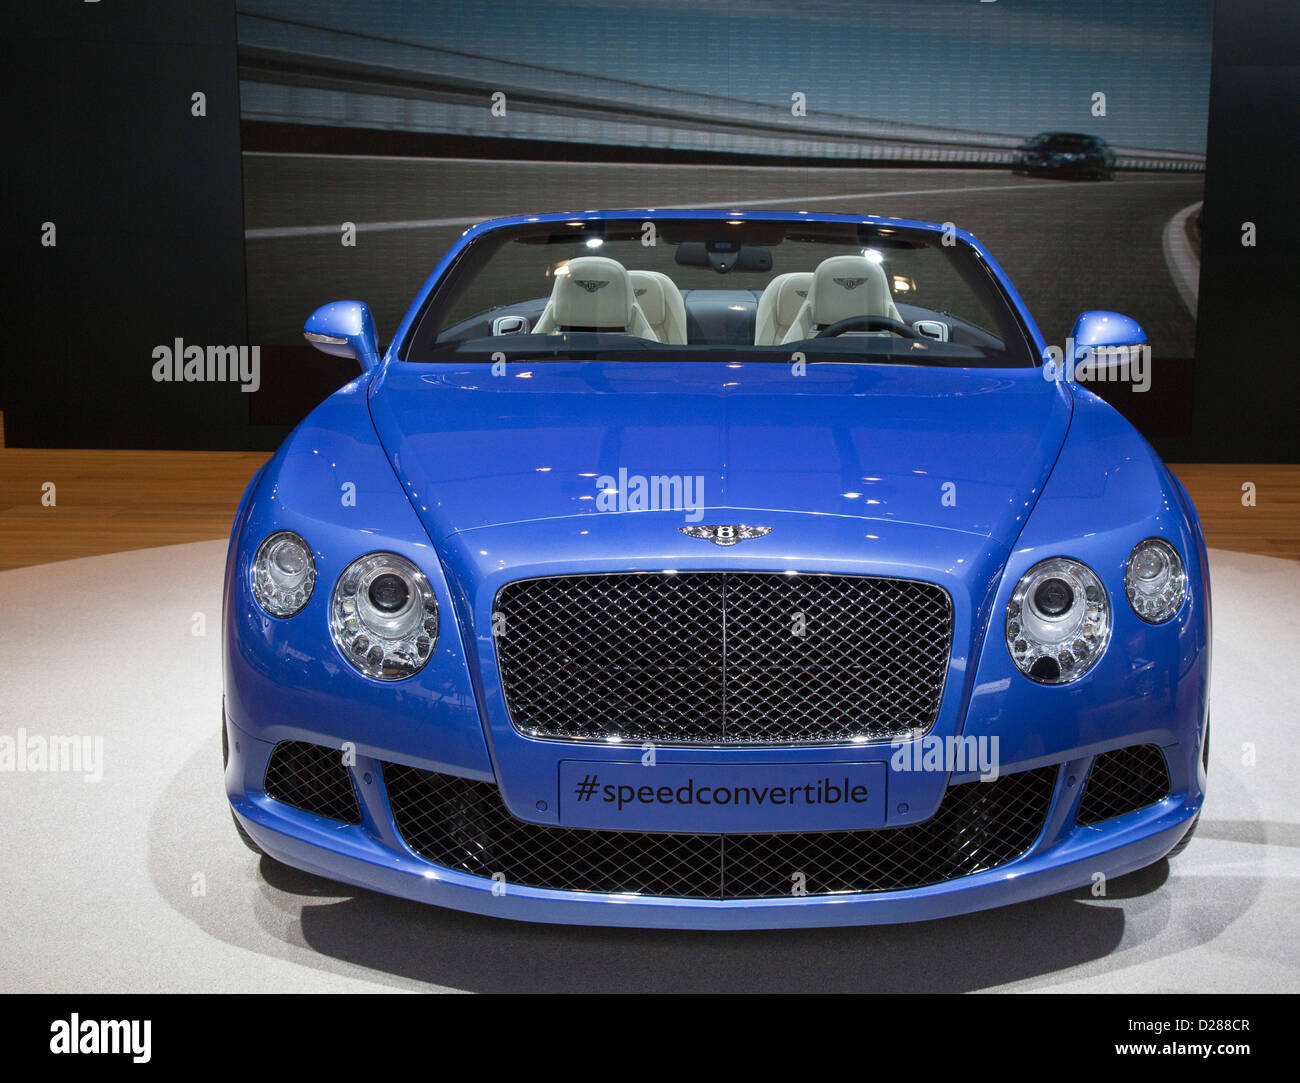 Der Bentley Continental GT Speed Convertible auf dem Display auf der North American International Auto Show Stockbild